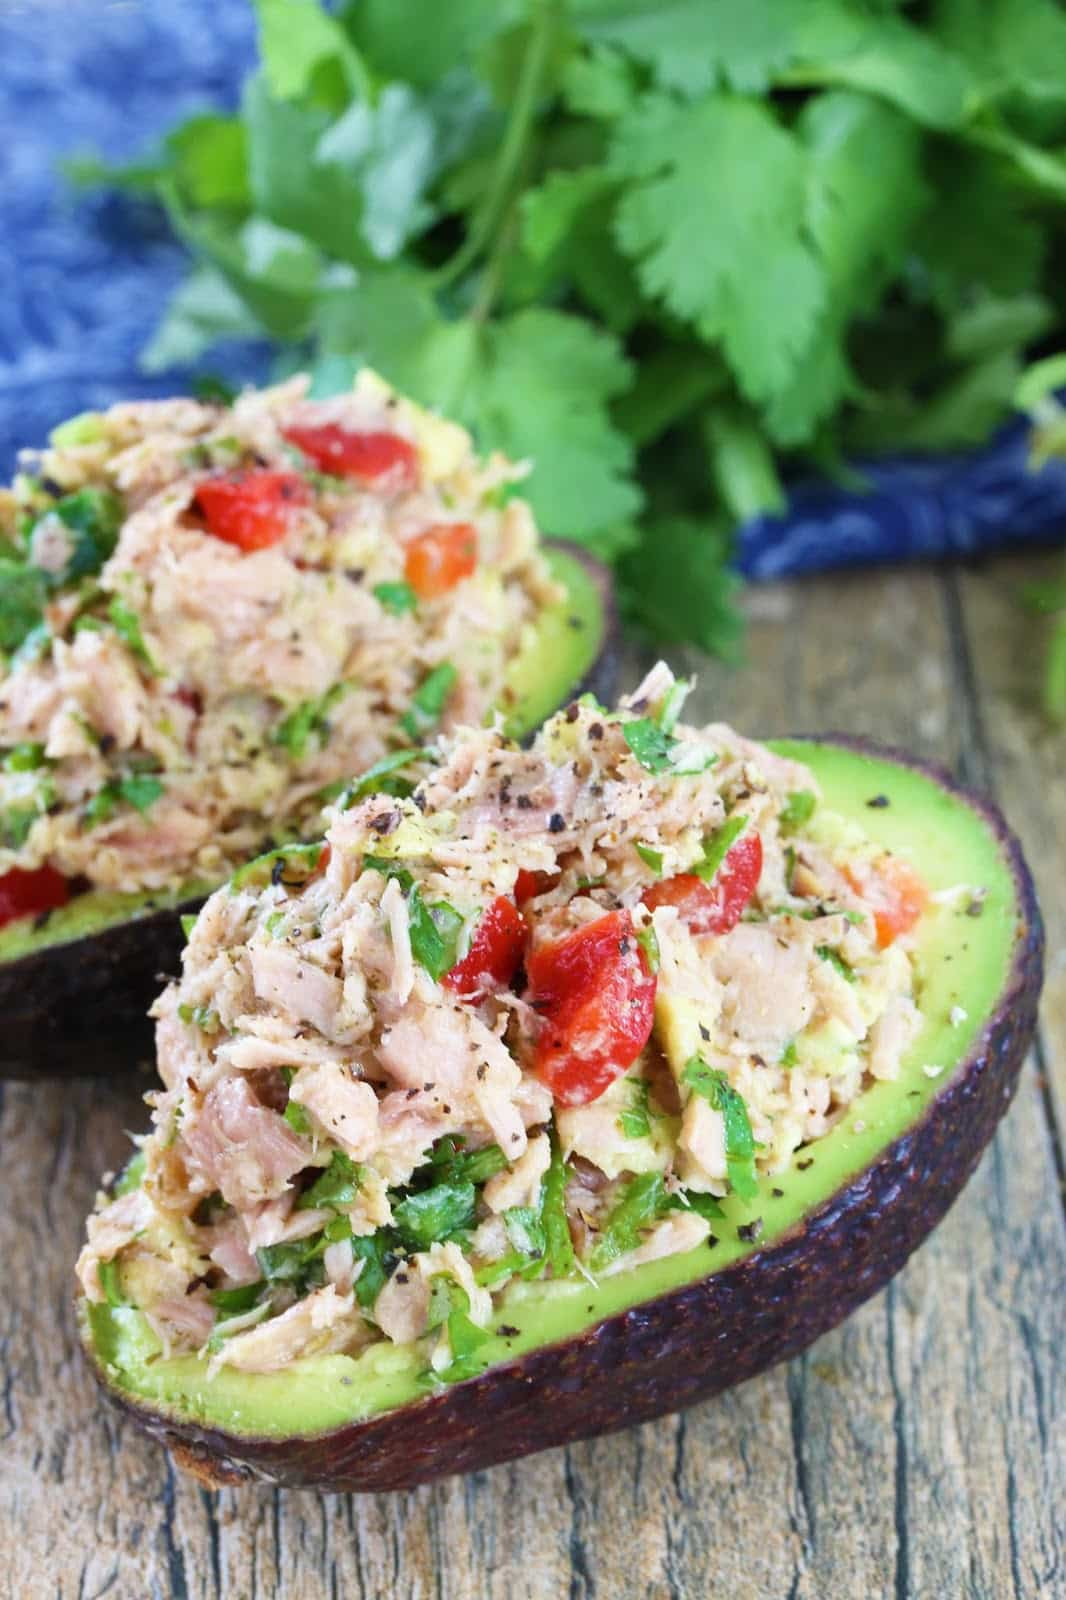 Healthy Recipes with Avocado the top 20 Ideas About Healthy Thai Tuna Stuffed Avocado